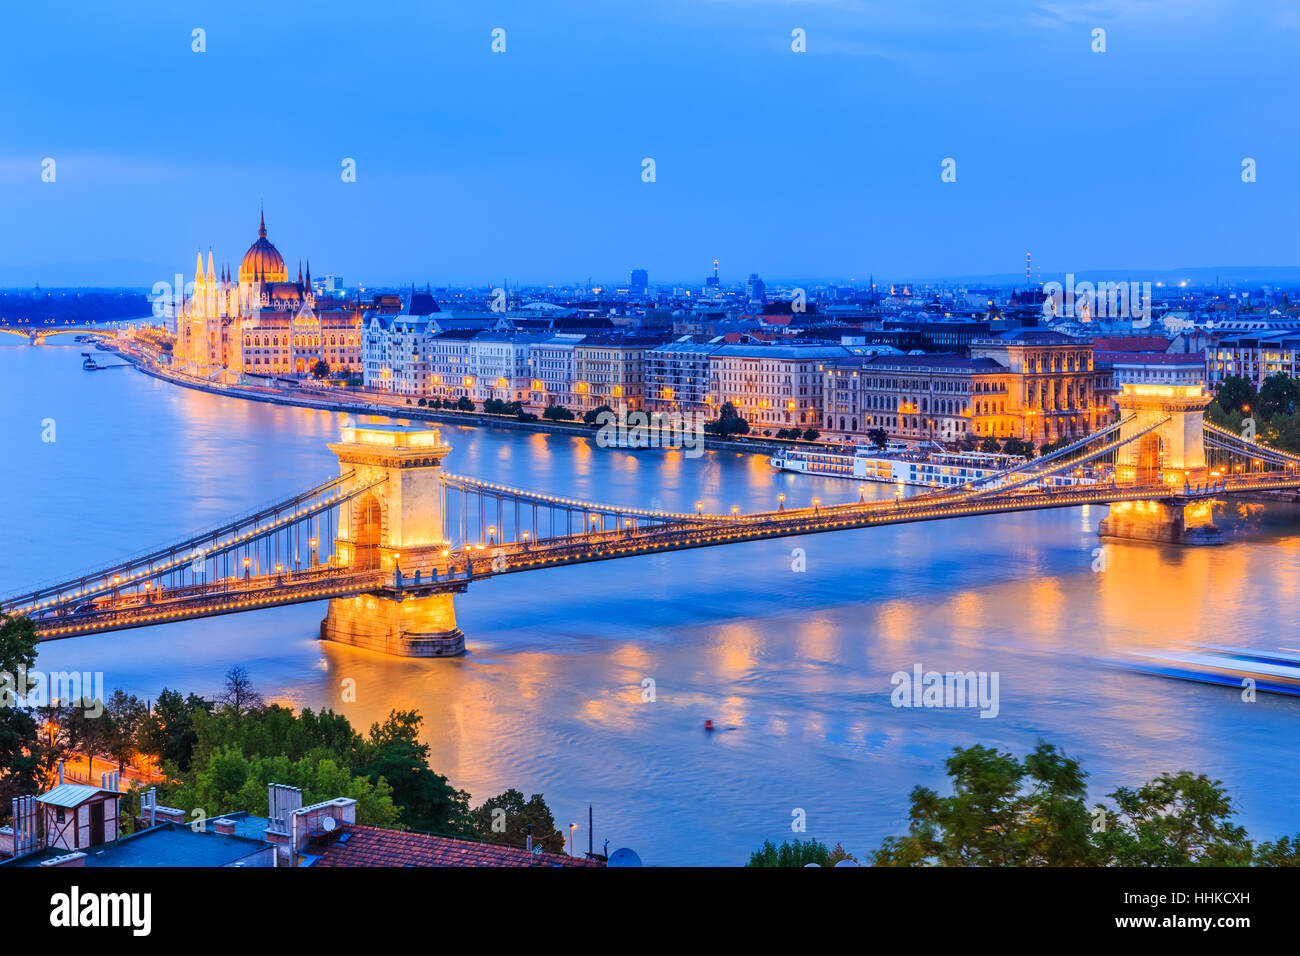 Budapest, Hungary. The chain bridge over river Danube and famous building of Parliament. - Stock Image